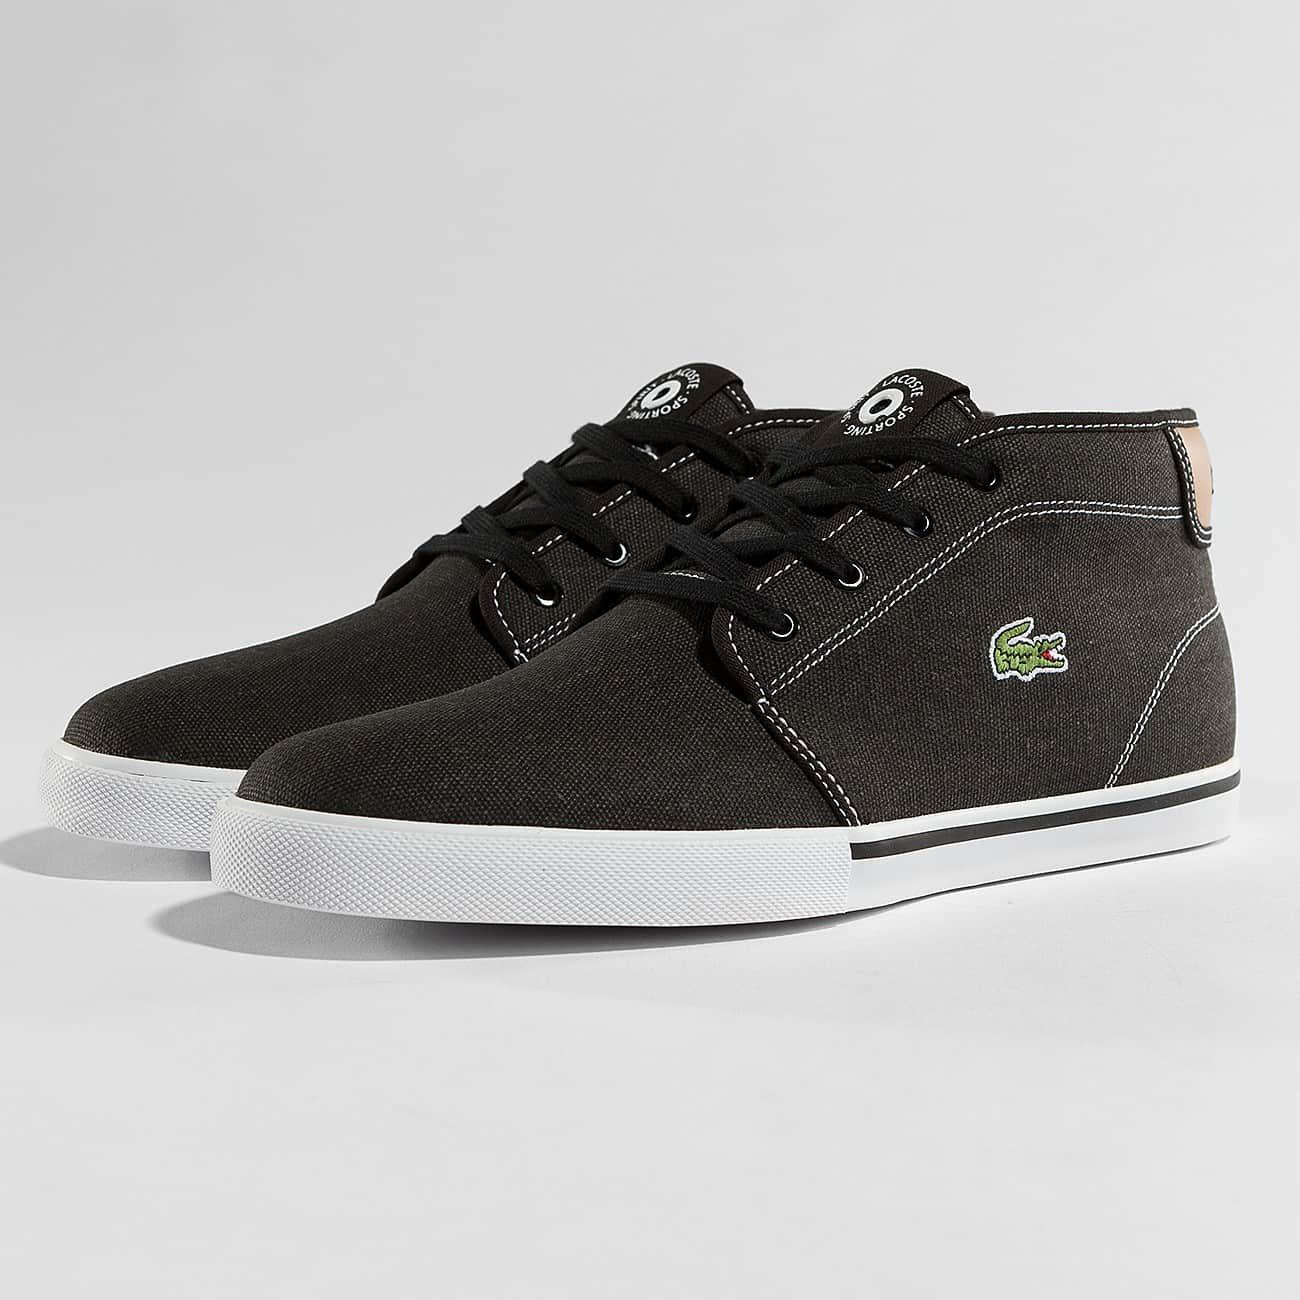 95d8ff41140 Lyst - Lacoste Sneakers Ampthill in Black for Men